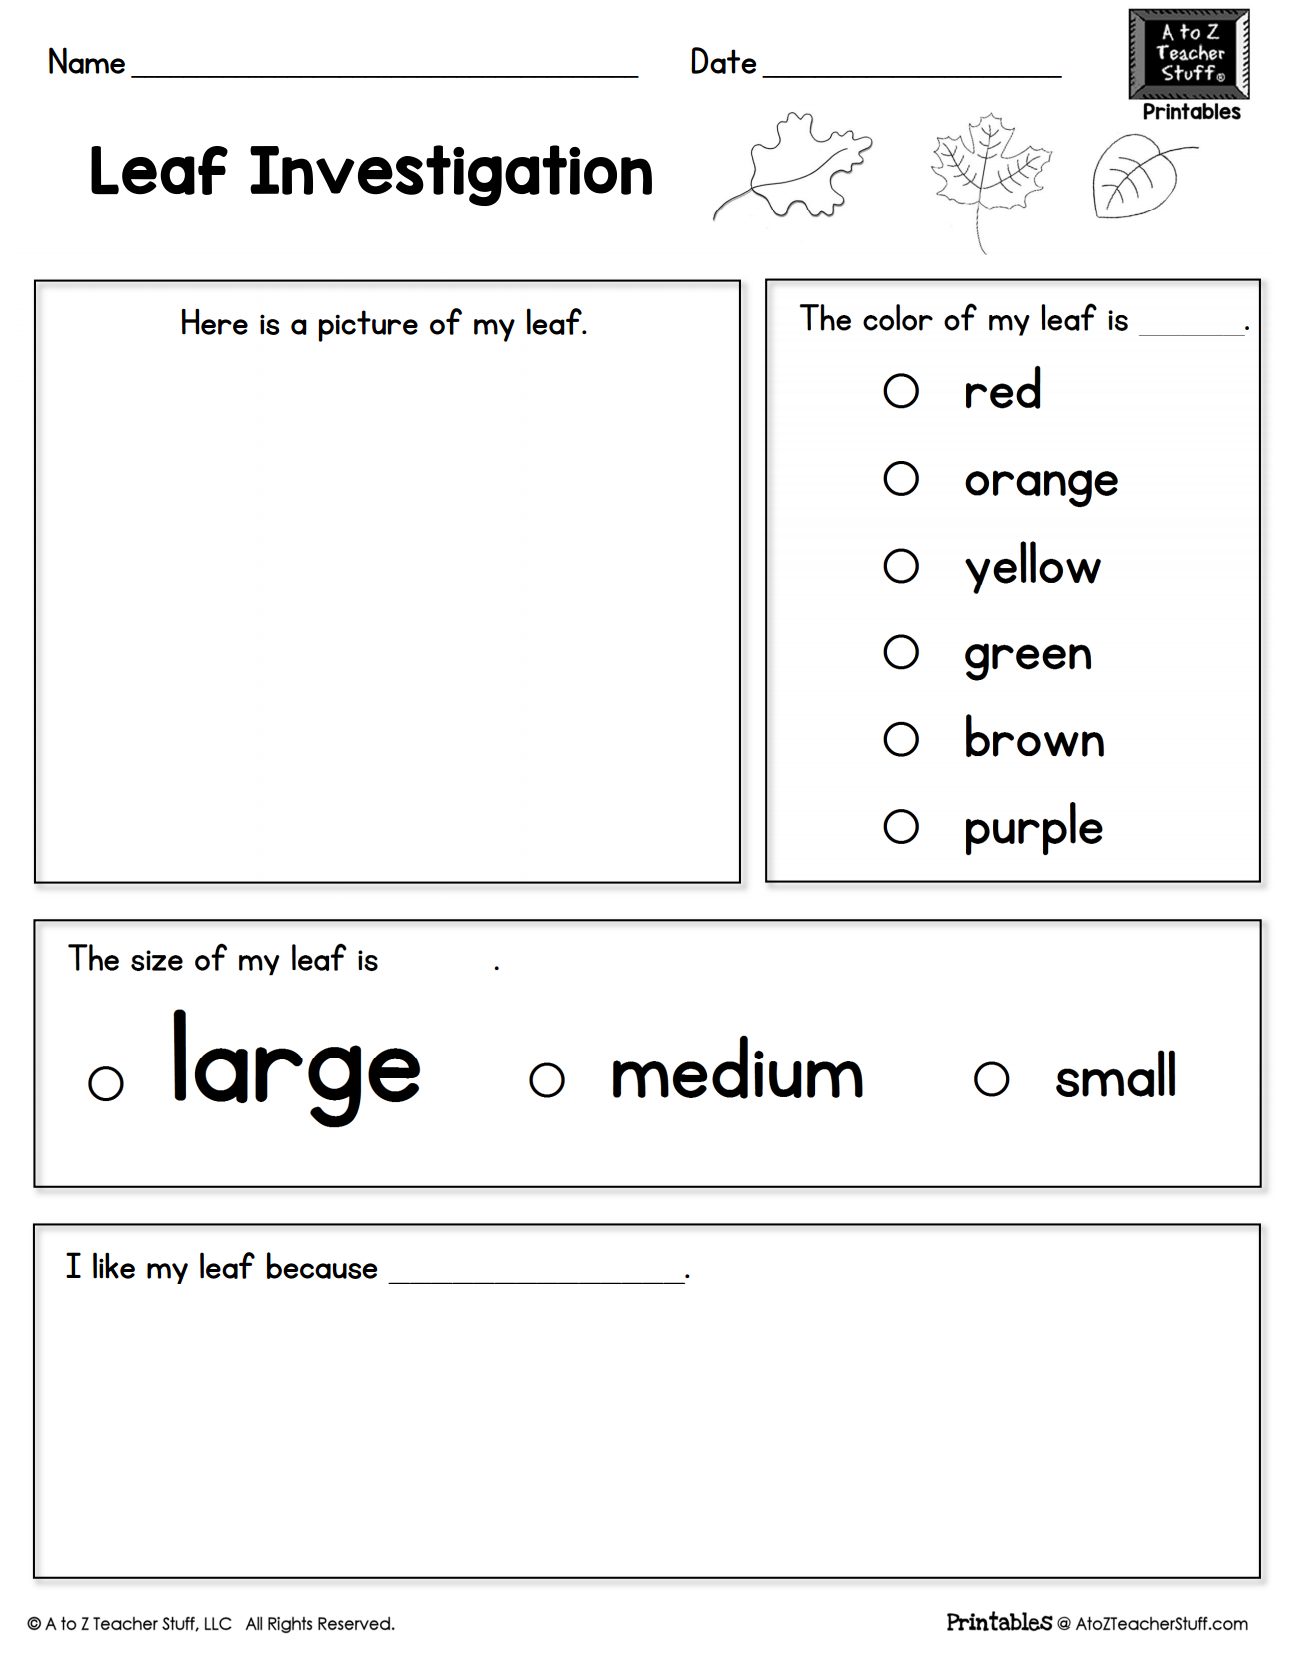 worksheet And Worksheets leaf investigation printable worksheet a to z teacher stuff page